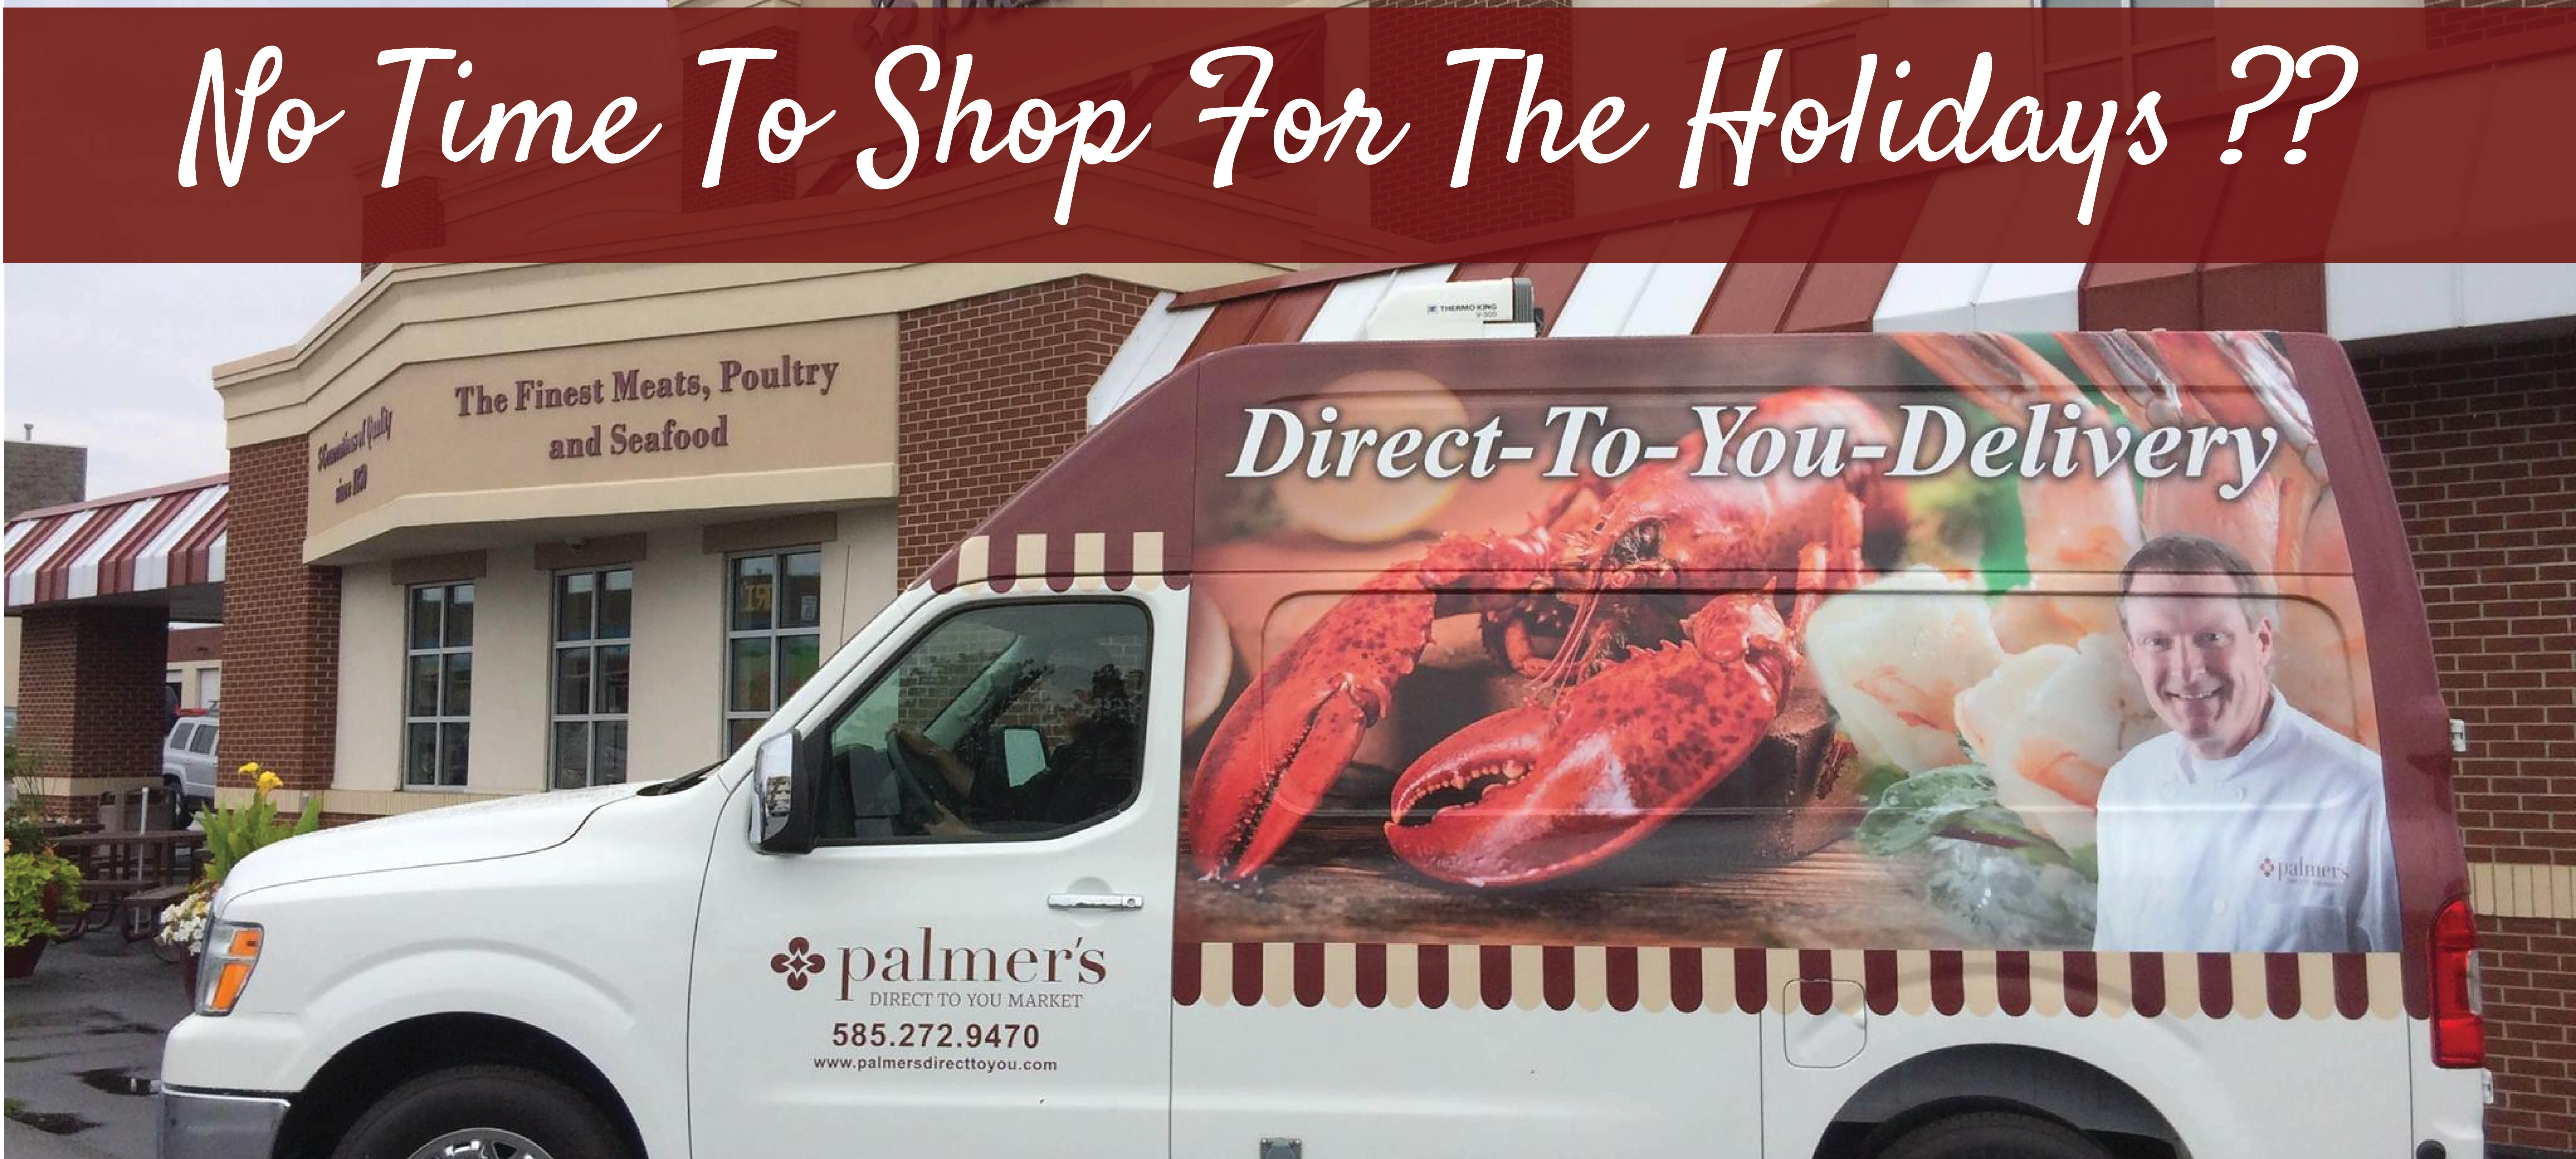 Delivery from Palmer's Direct to you Market